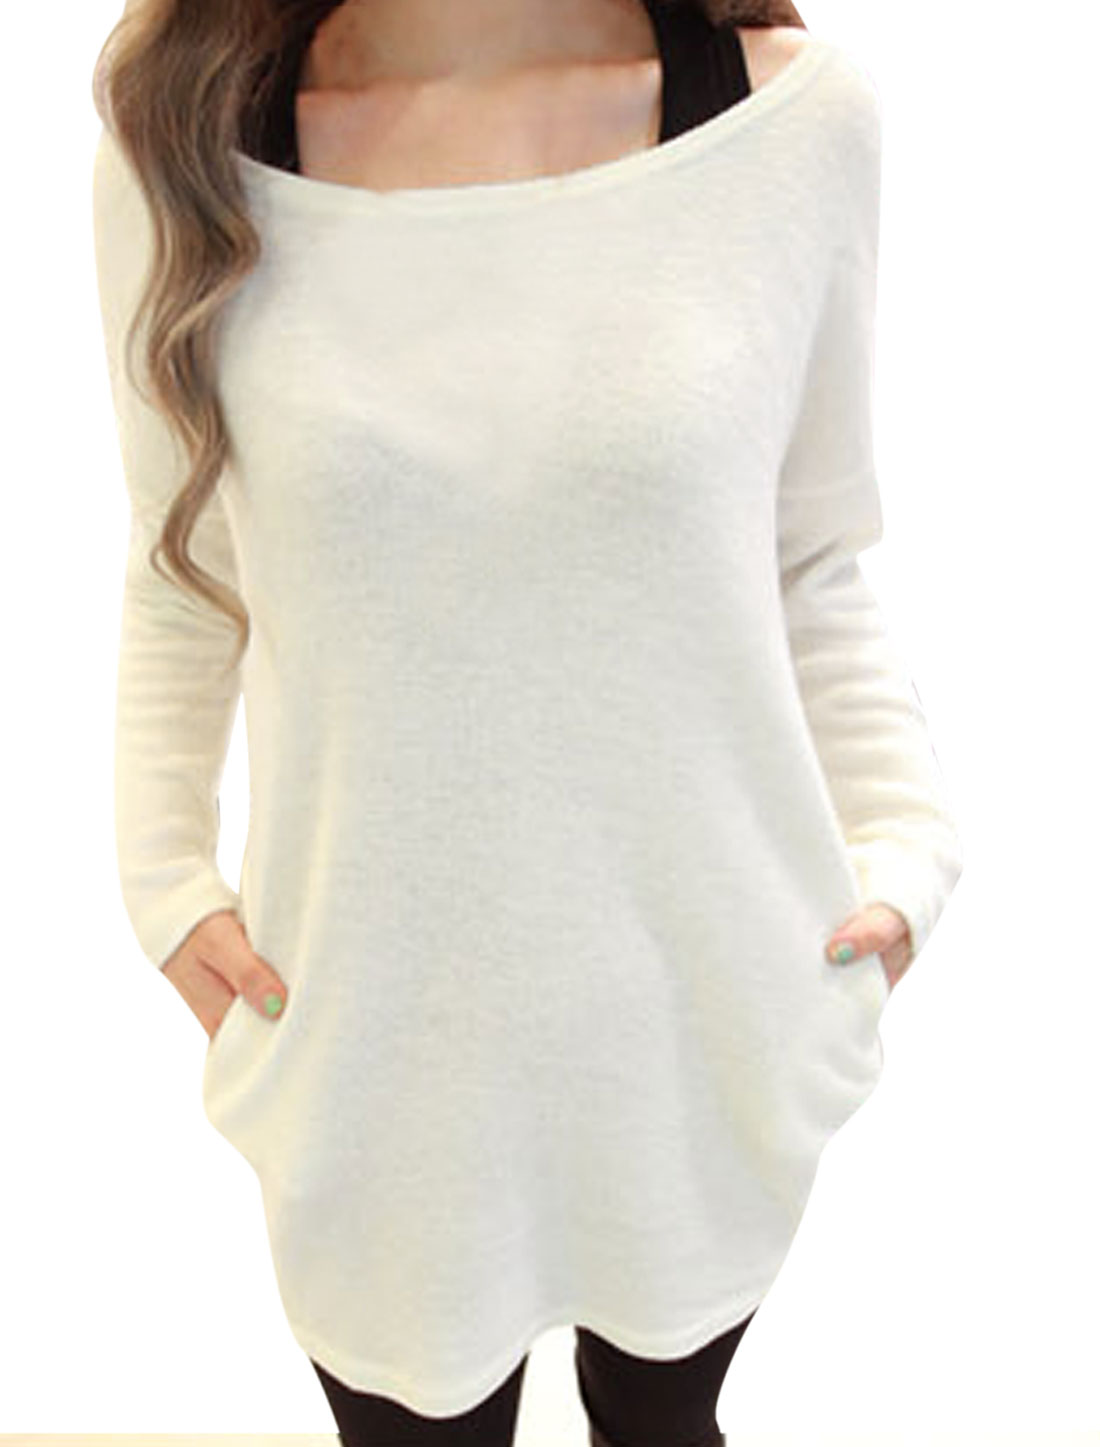 Lady Scoop Neck Long Sleeve Pullover White Knit Shirt S